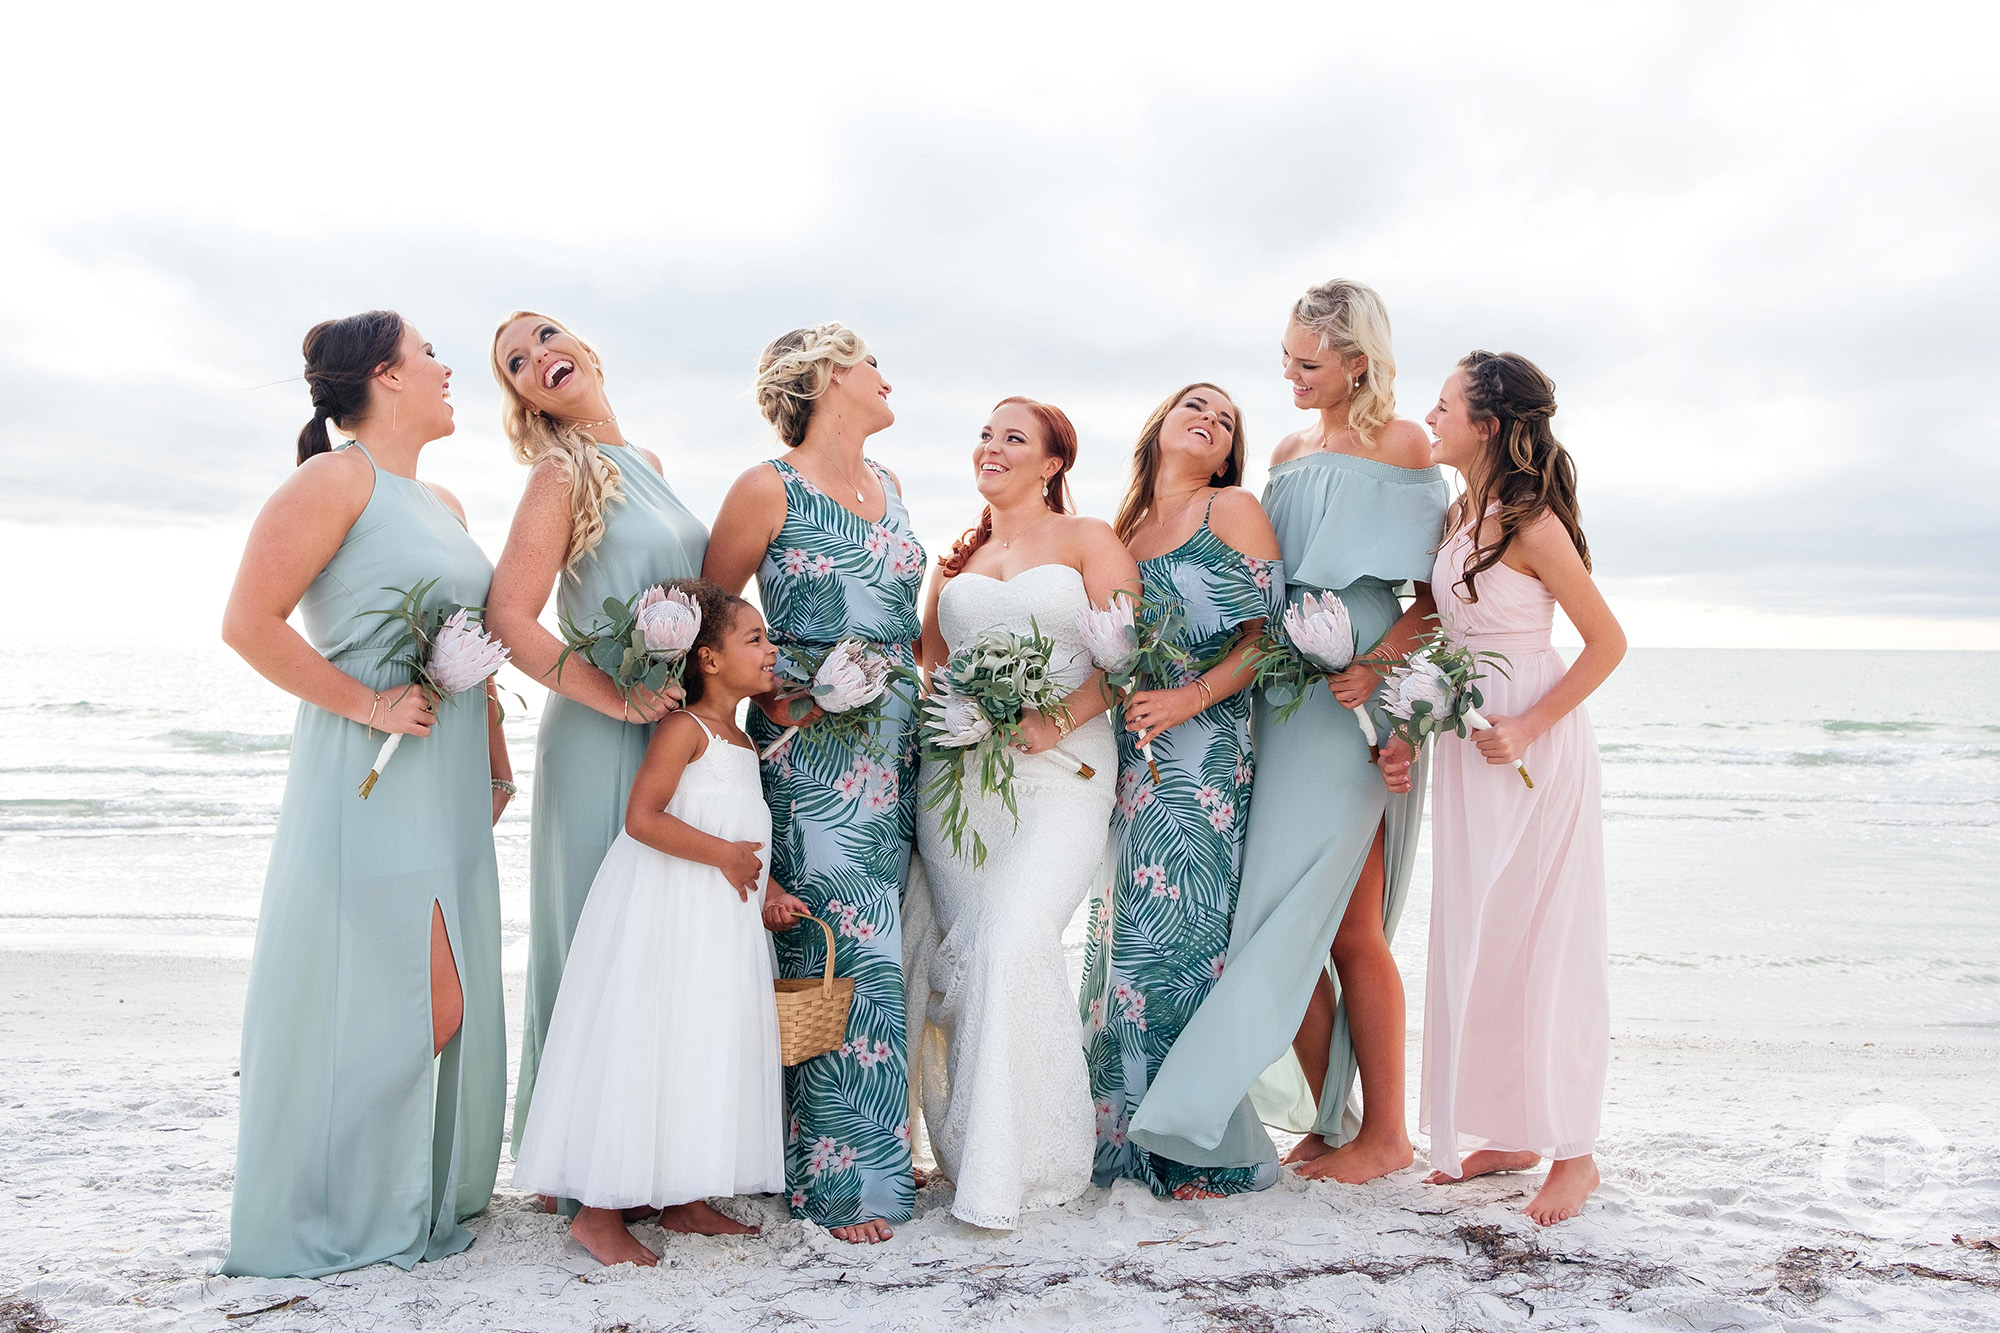 Complete Weddings + Events - Tampa, FL 33629 - (813)961-2900 | ShowMeLocal.com